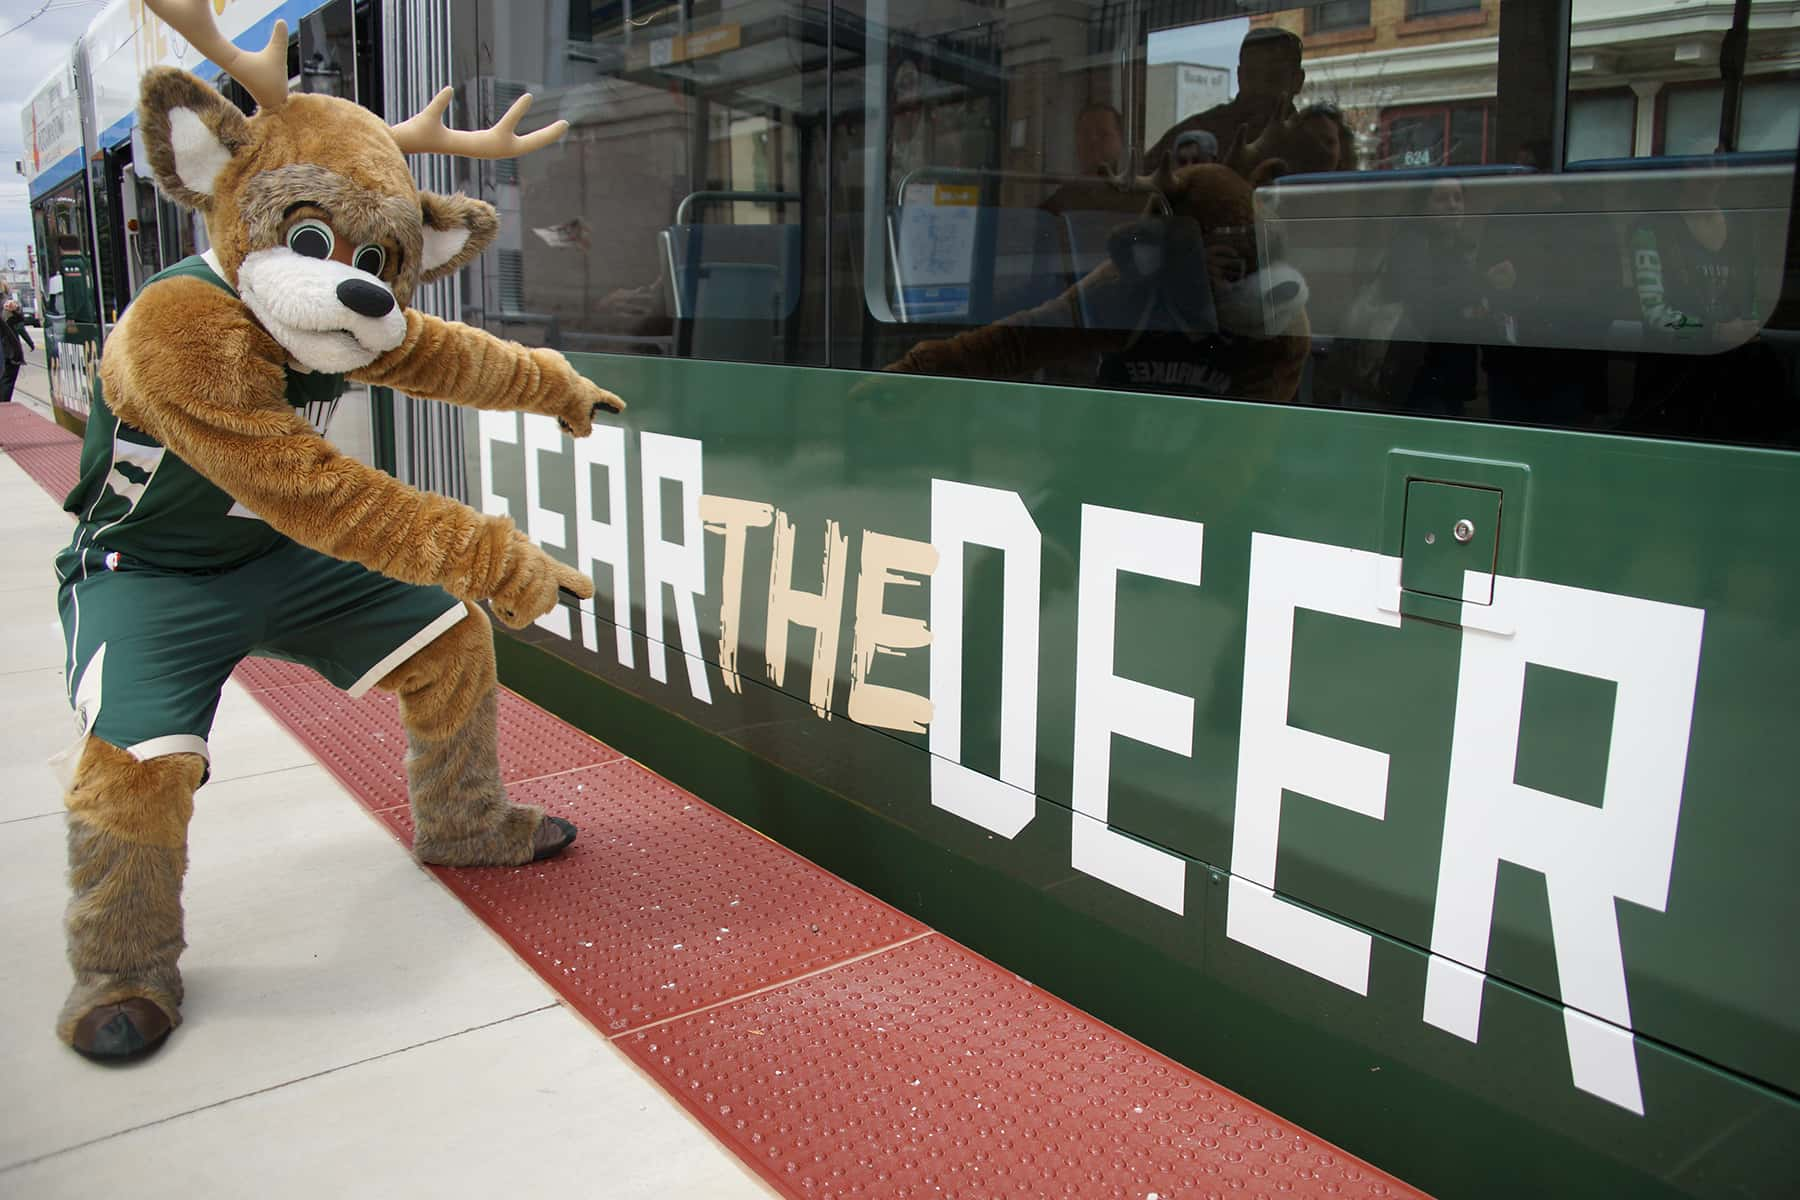 c041219_fearthedeergreen_1844